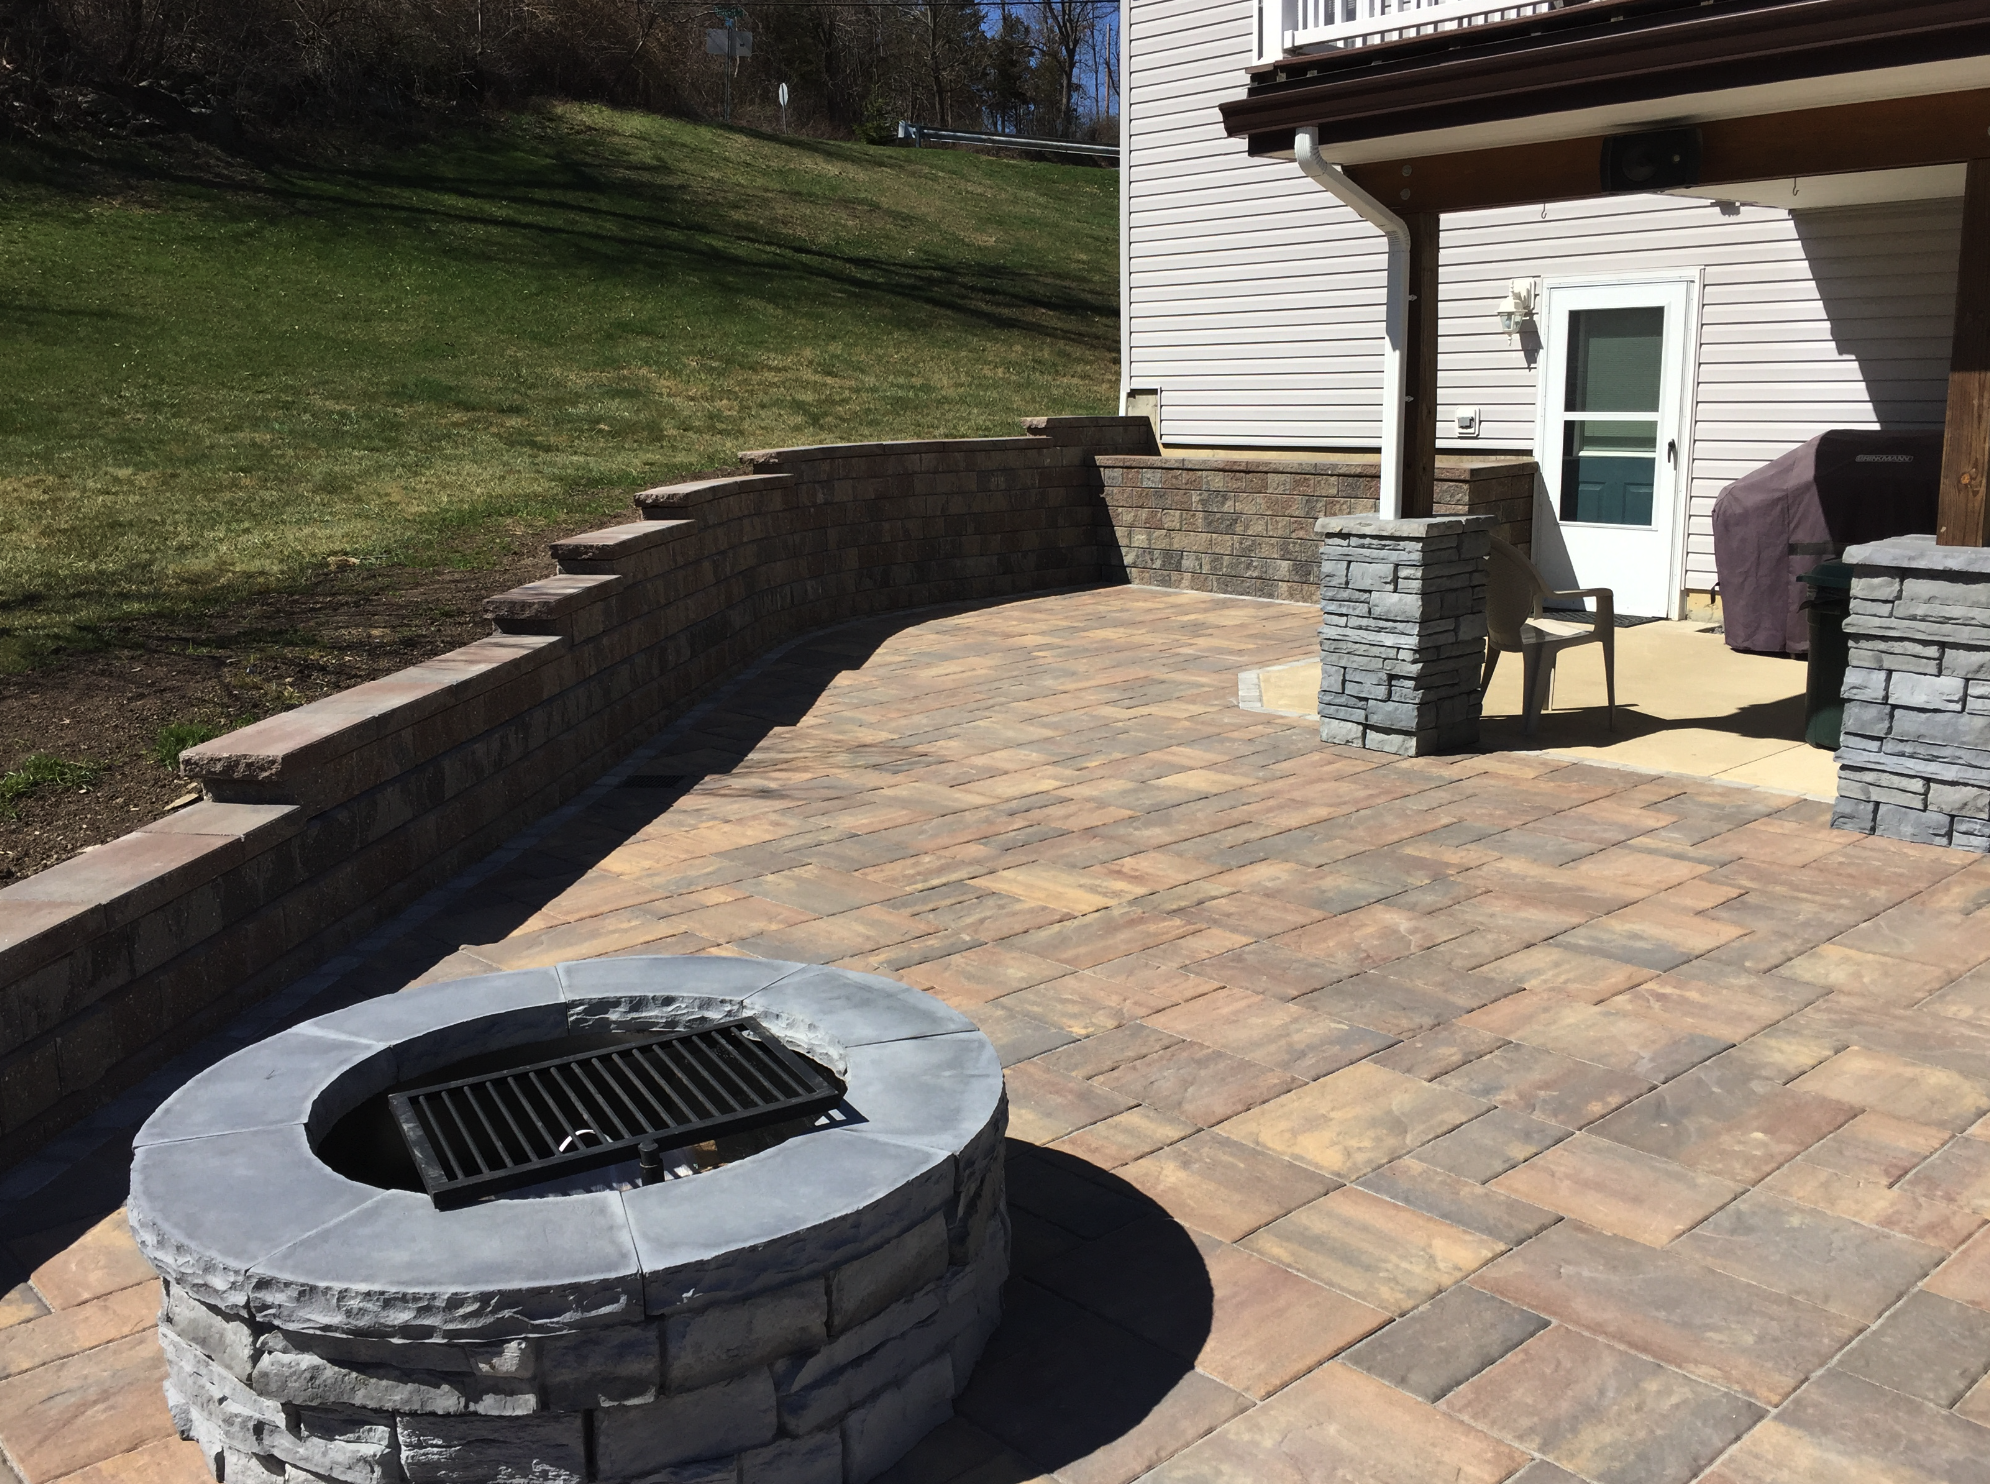 Patio Design in Dutchess County, NY with fire pit, retaining walls, and columns with overhead shade.